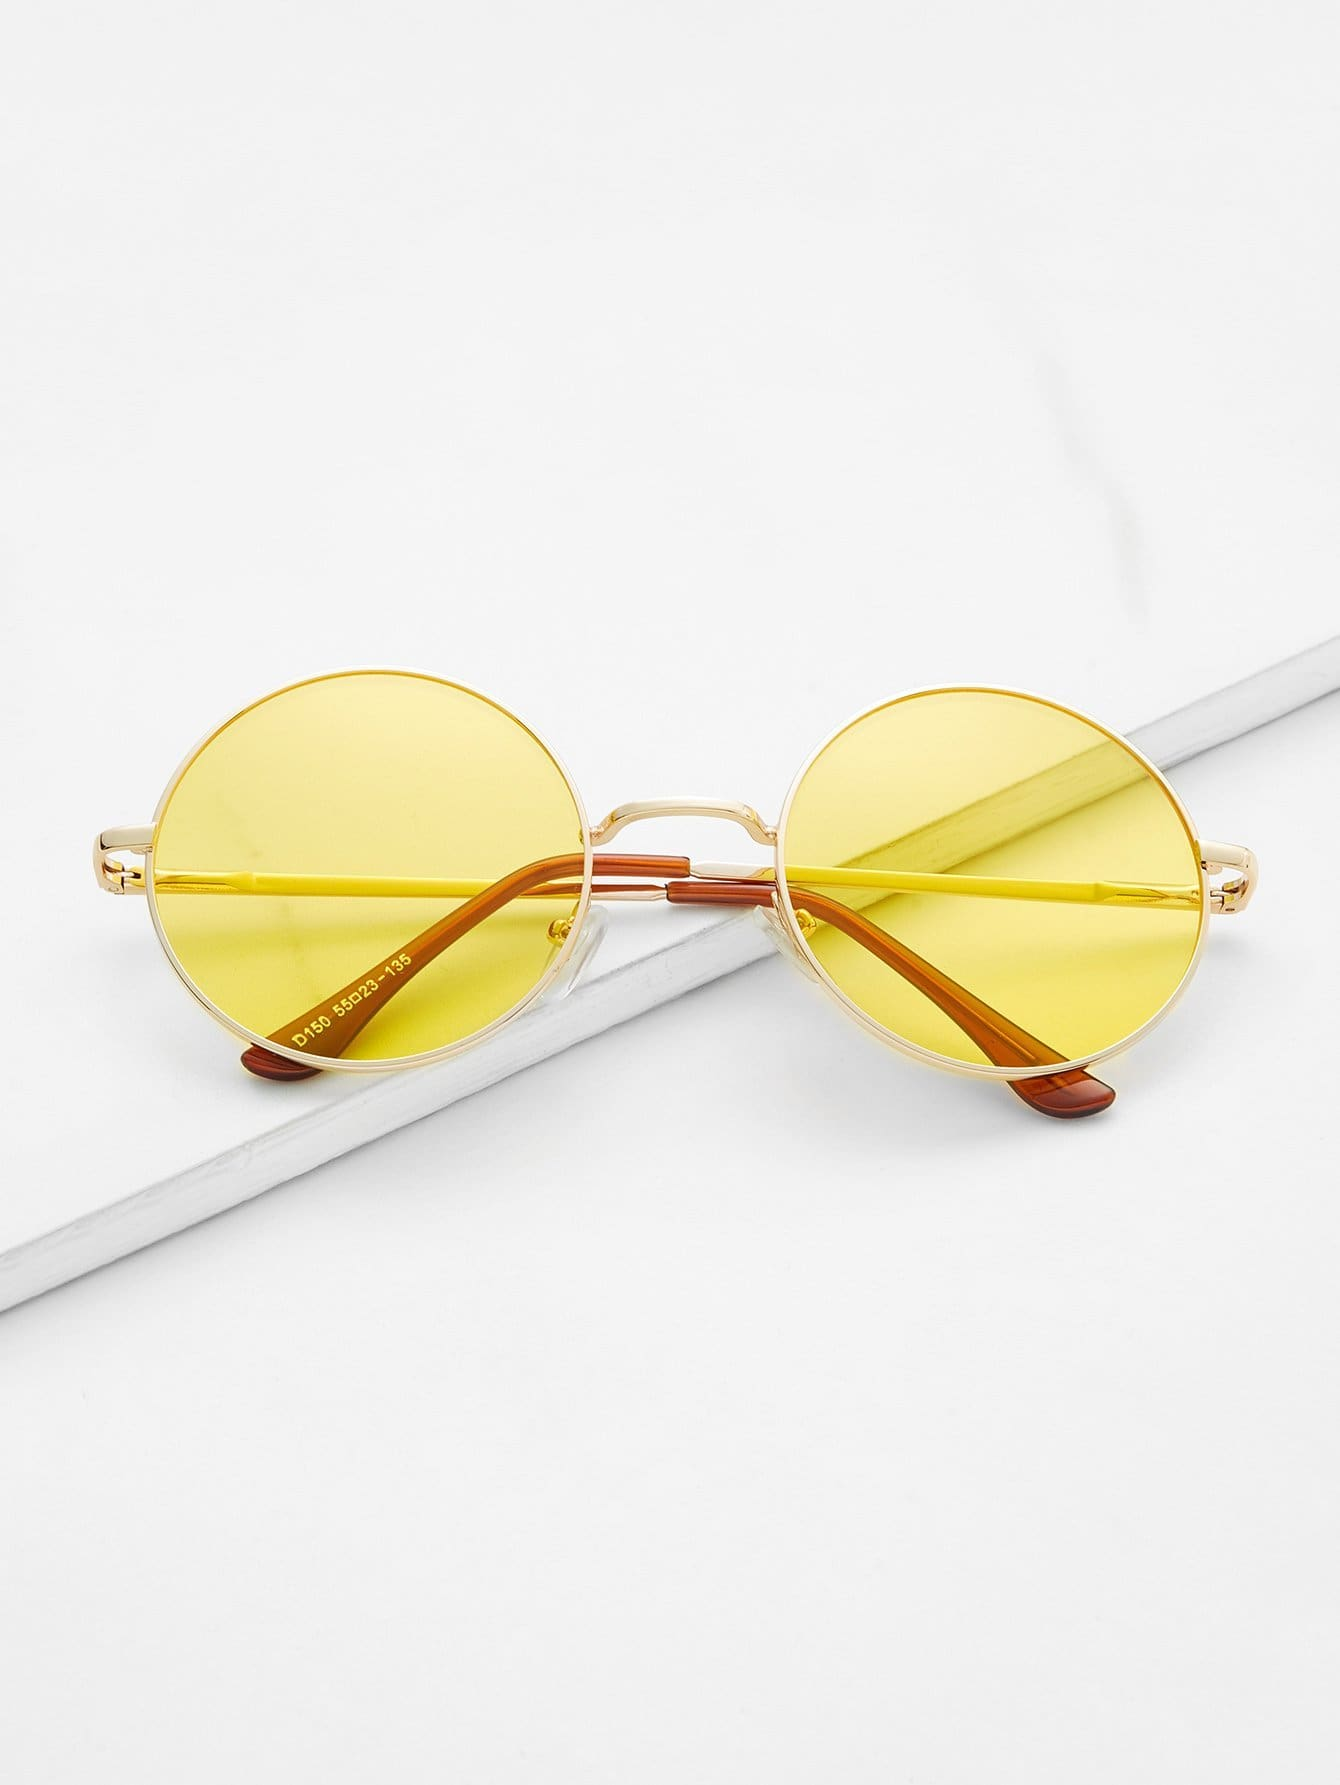 Metal Frame Yellow Round Lens Retro Style Sunglasses - Sunglasses